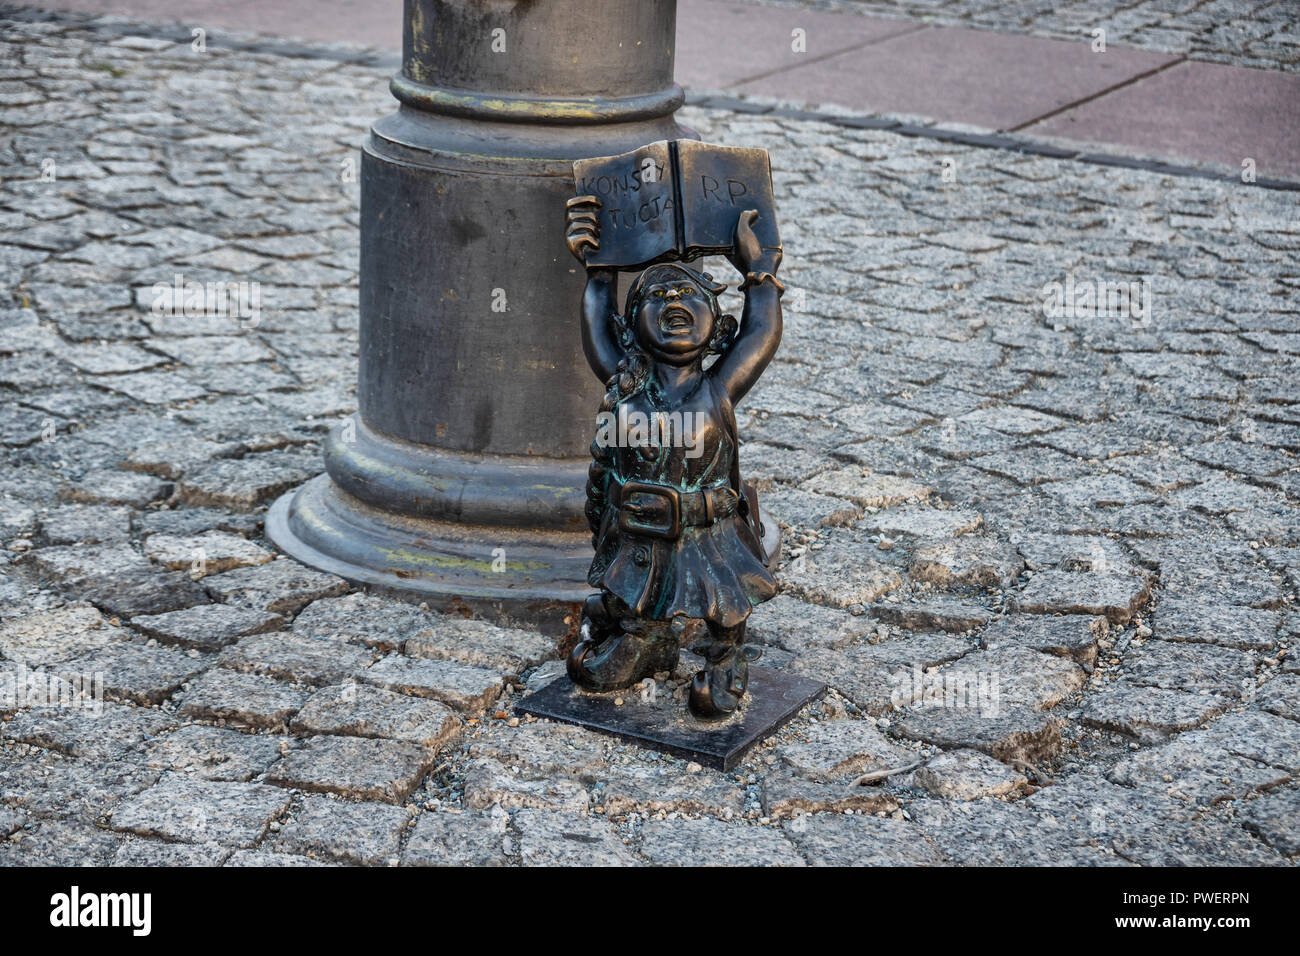 Gnomes Elfs small statues in Wroclaw, Poland Stock Photo